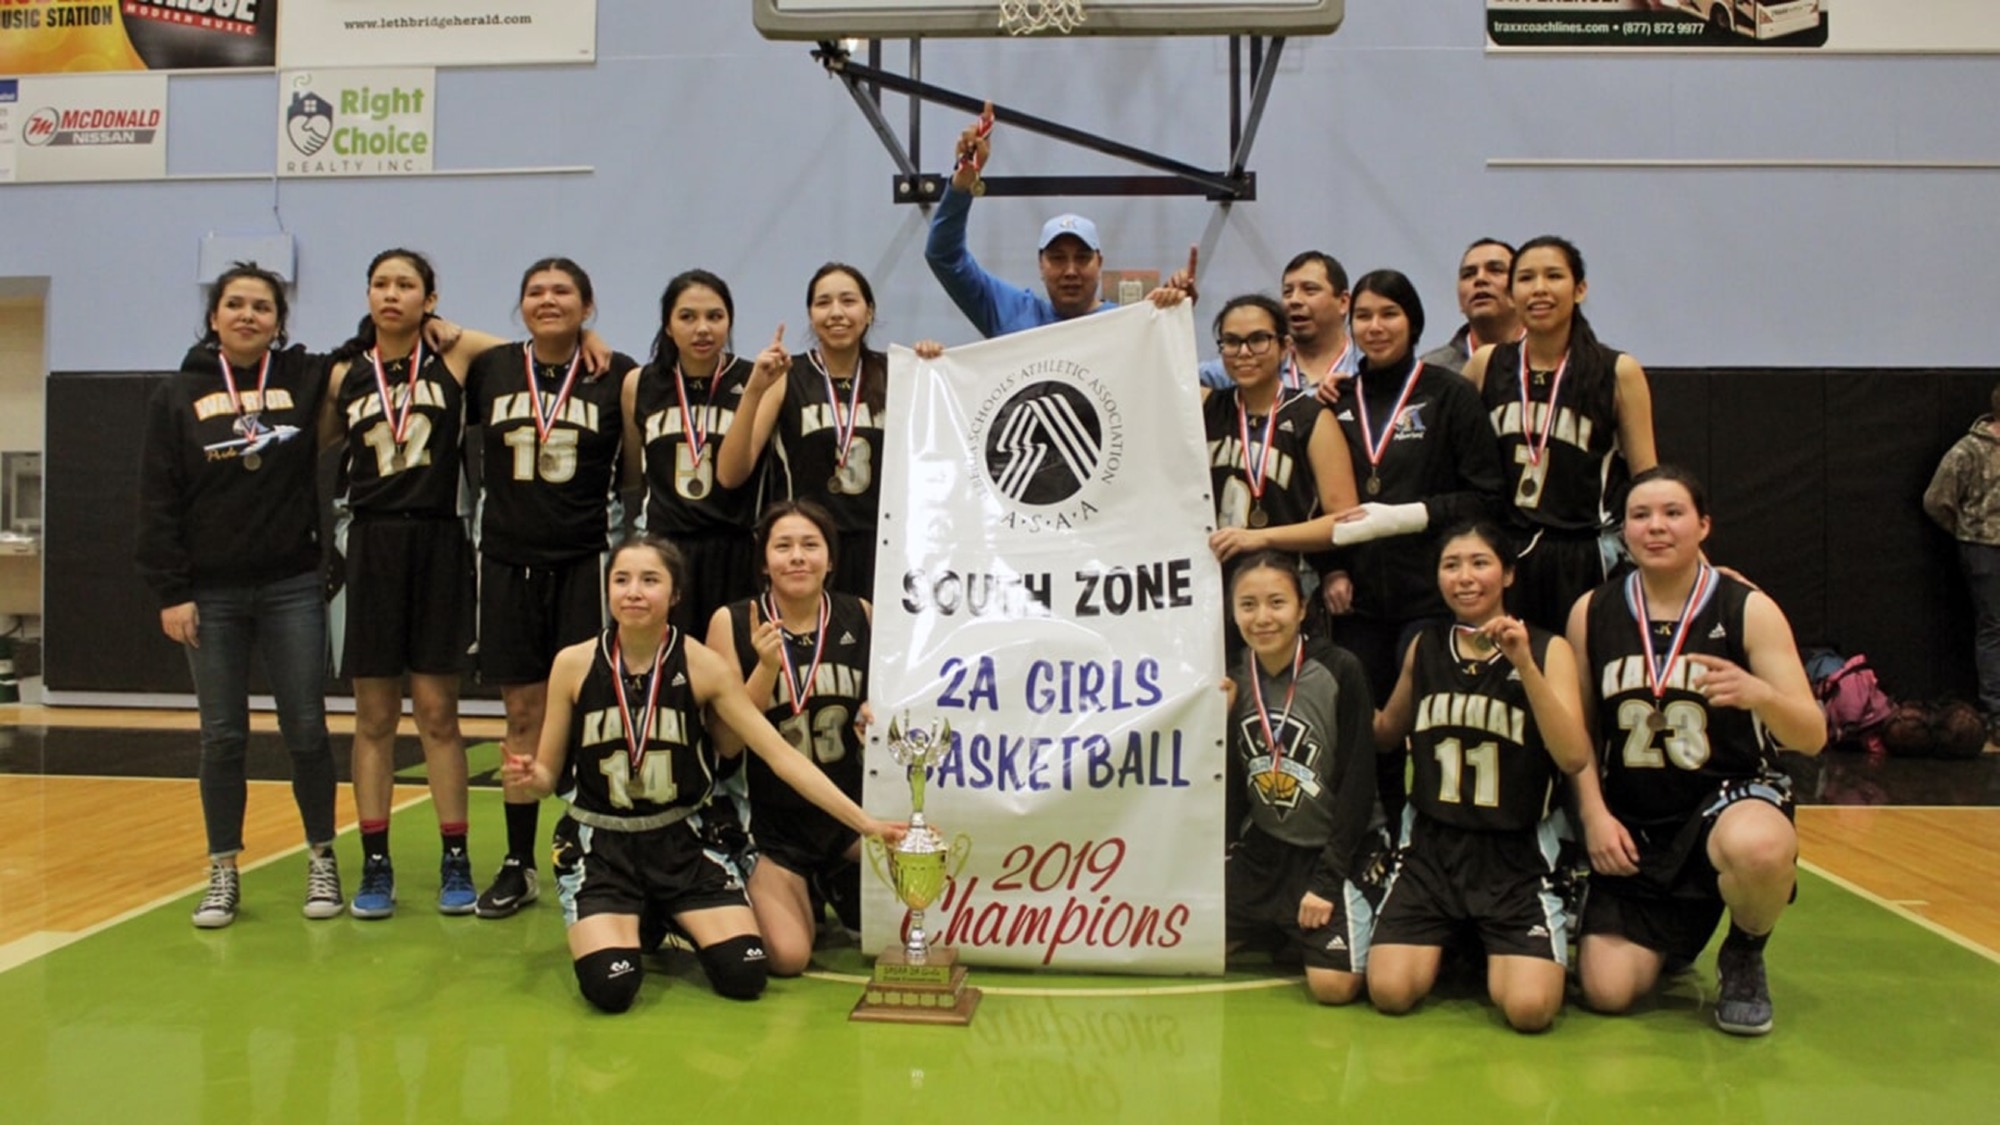 Charlton Weasel Head, back middle, and his Kainai Warriors senior girls' basketball team celebrate their 2A south zone title.